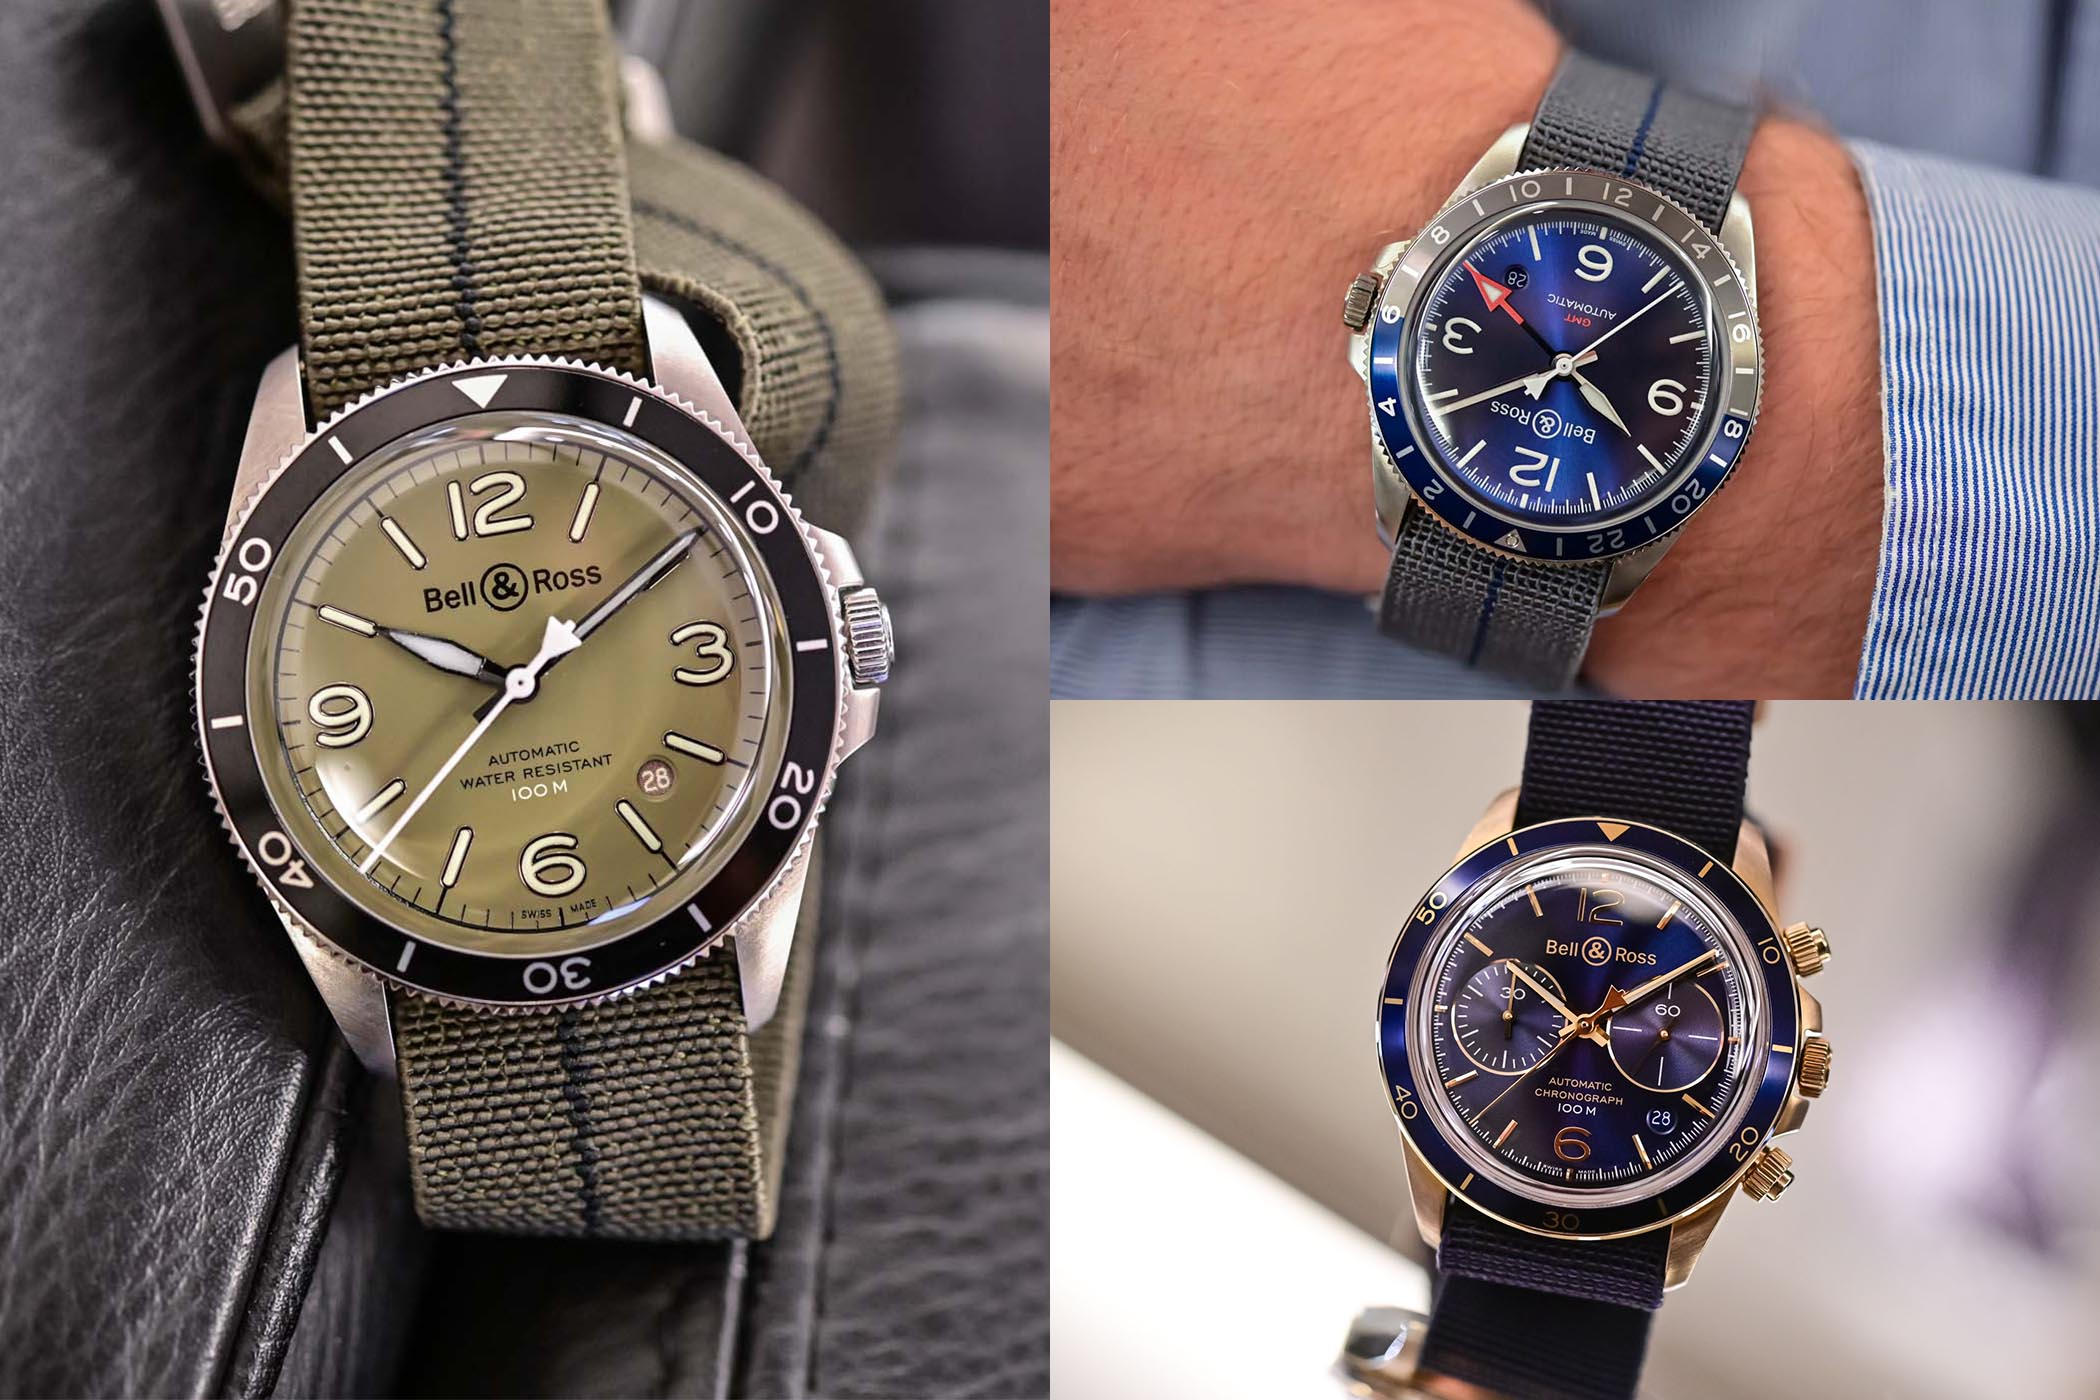 Bell & Ross new 2020 vintage collection - BR V2-92 Military Green - BR V2-93 GMT Blue - BR V2-94 Aeronavale Bronze